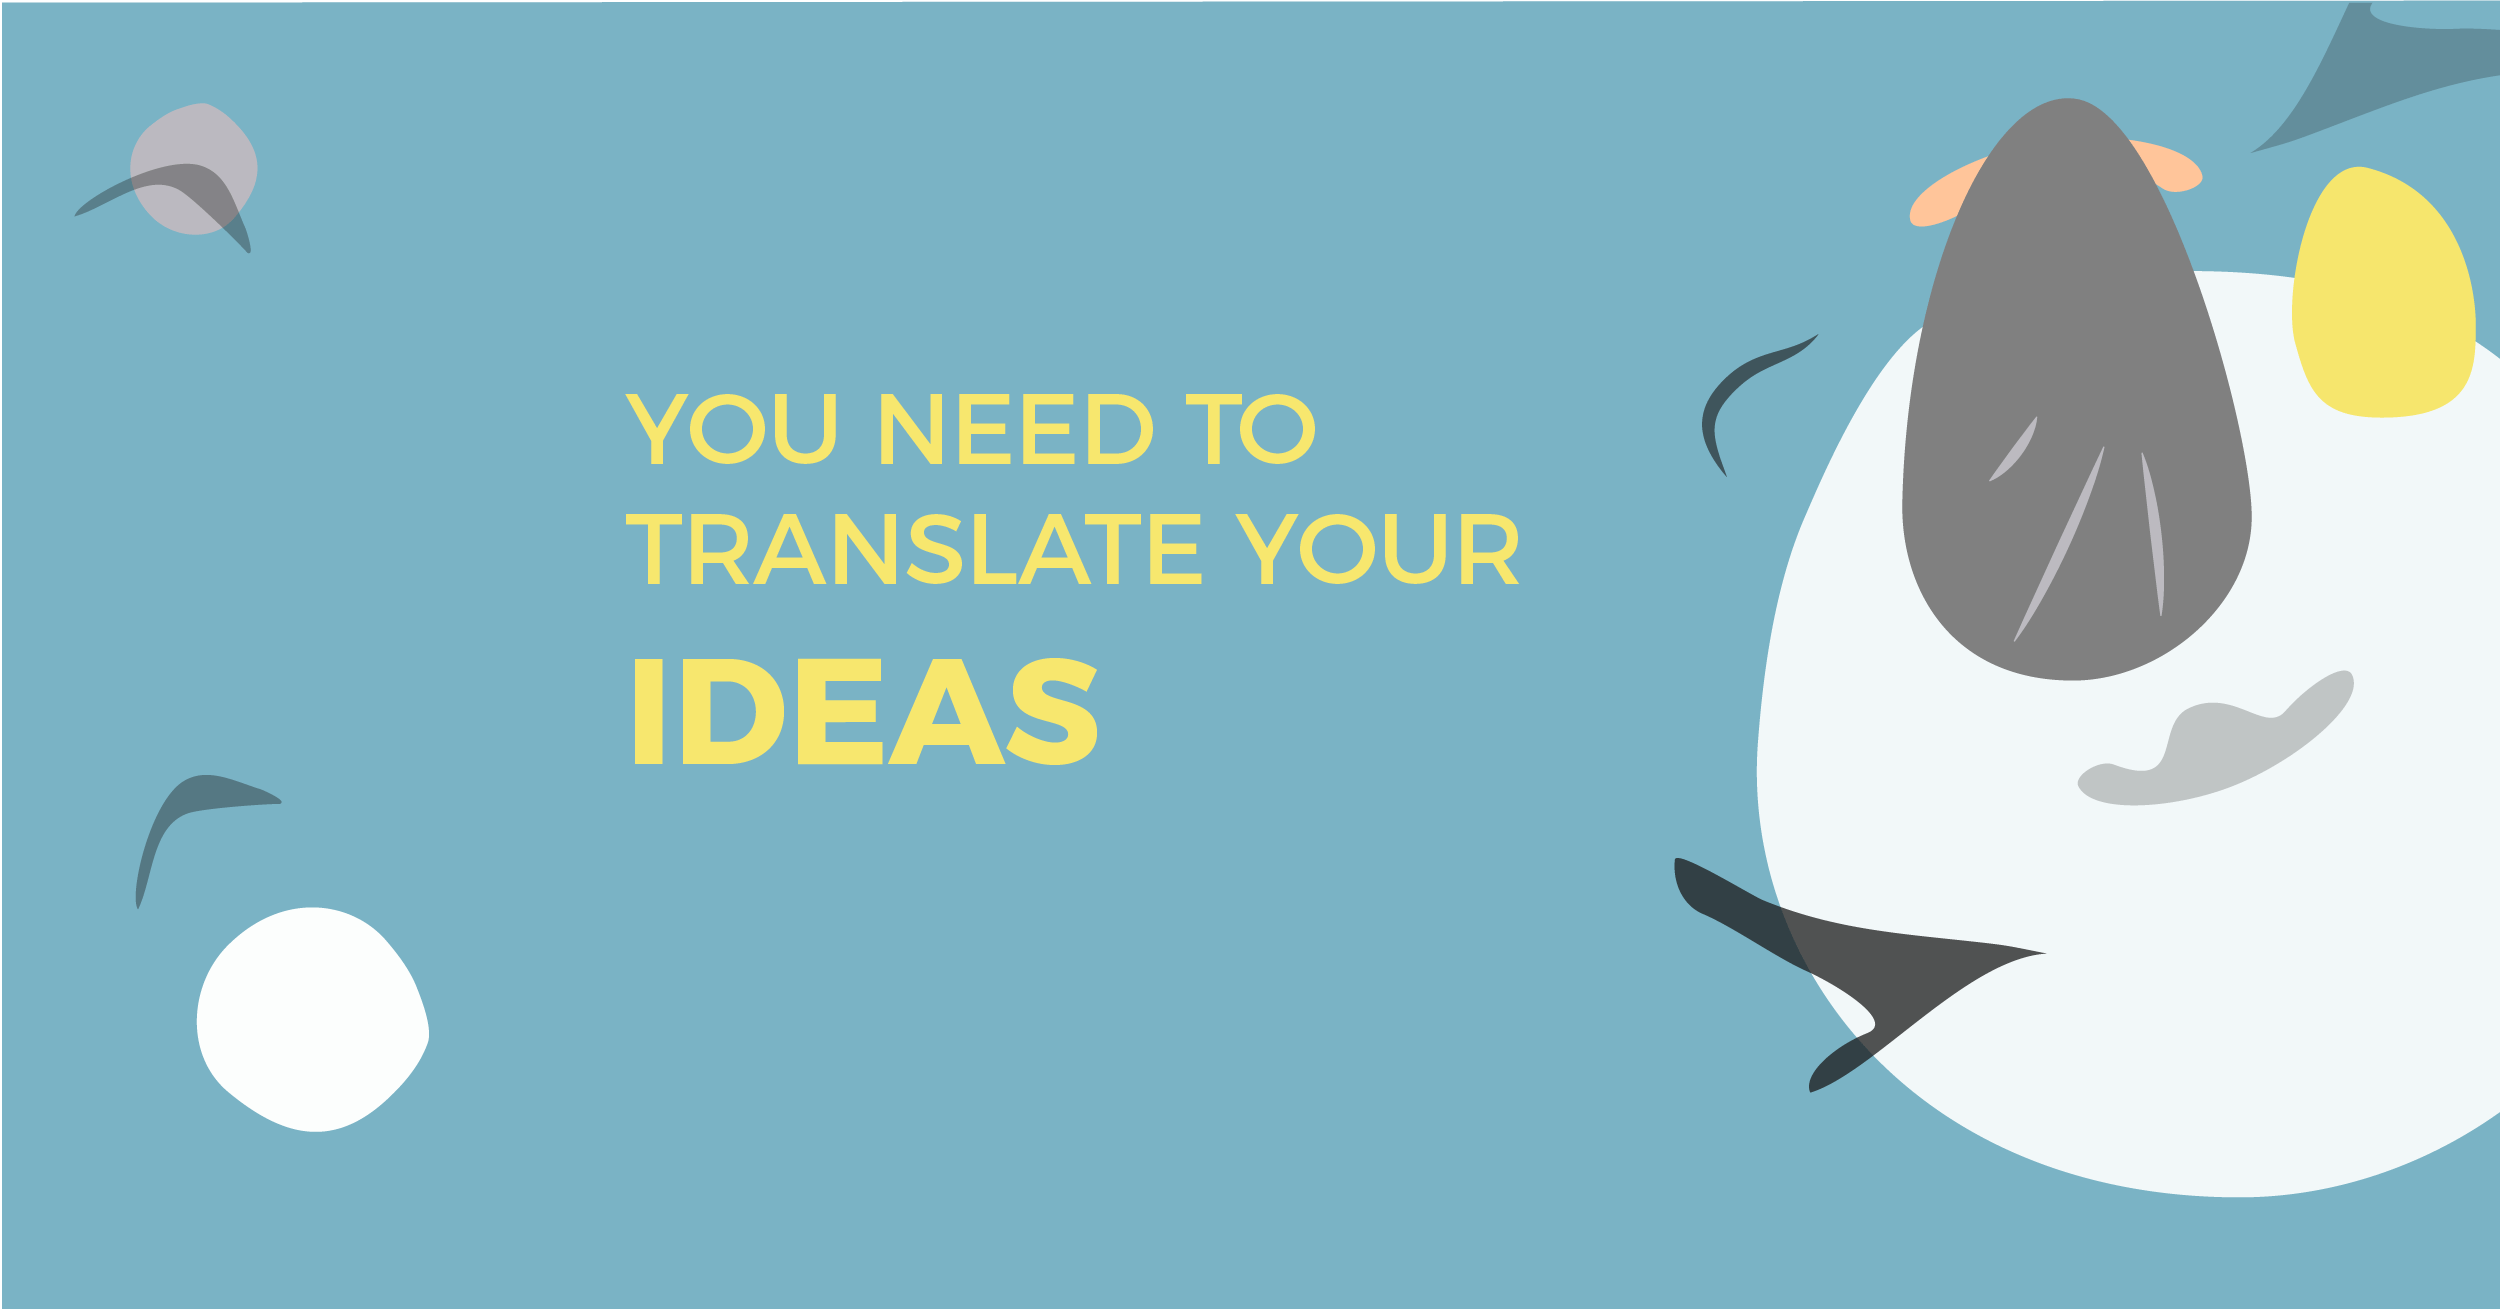 Translate your ideas